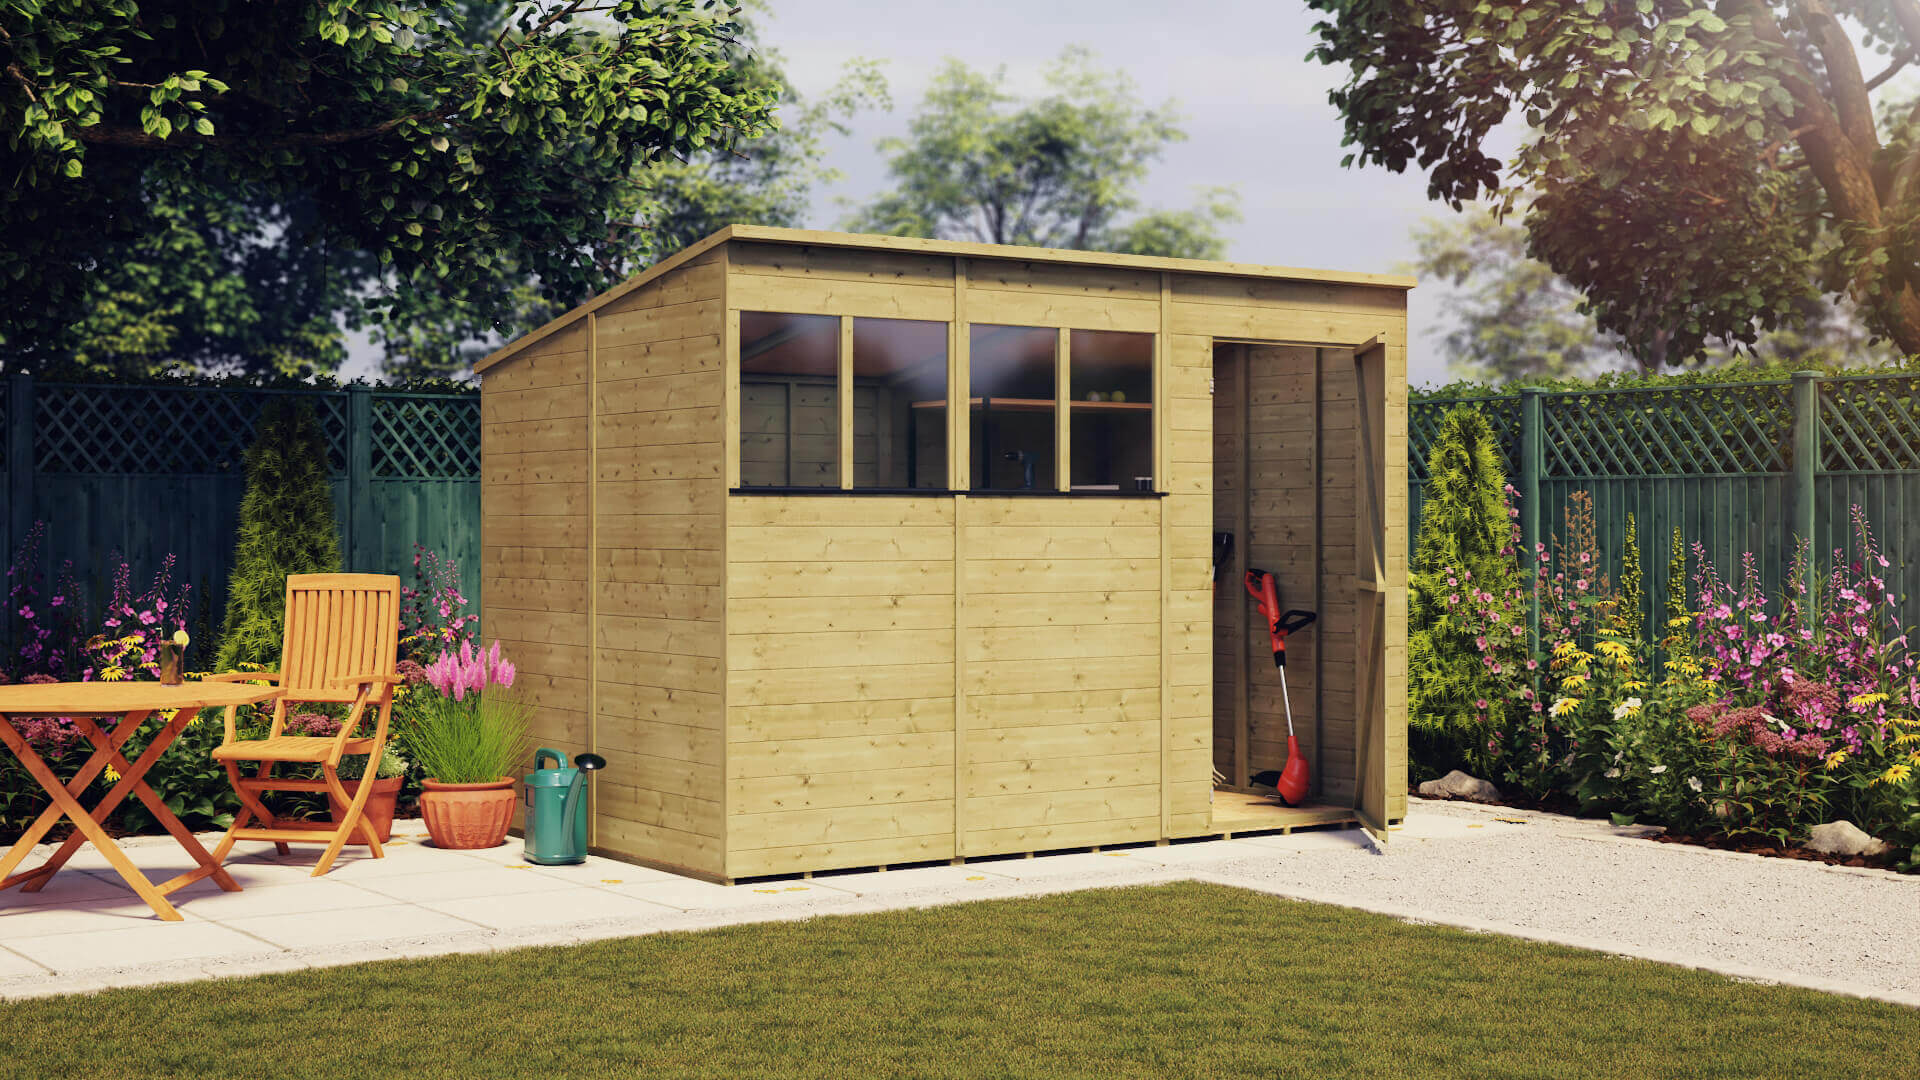 The Project Timber Pressure Treated Value Windowed Pent Shed Range